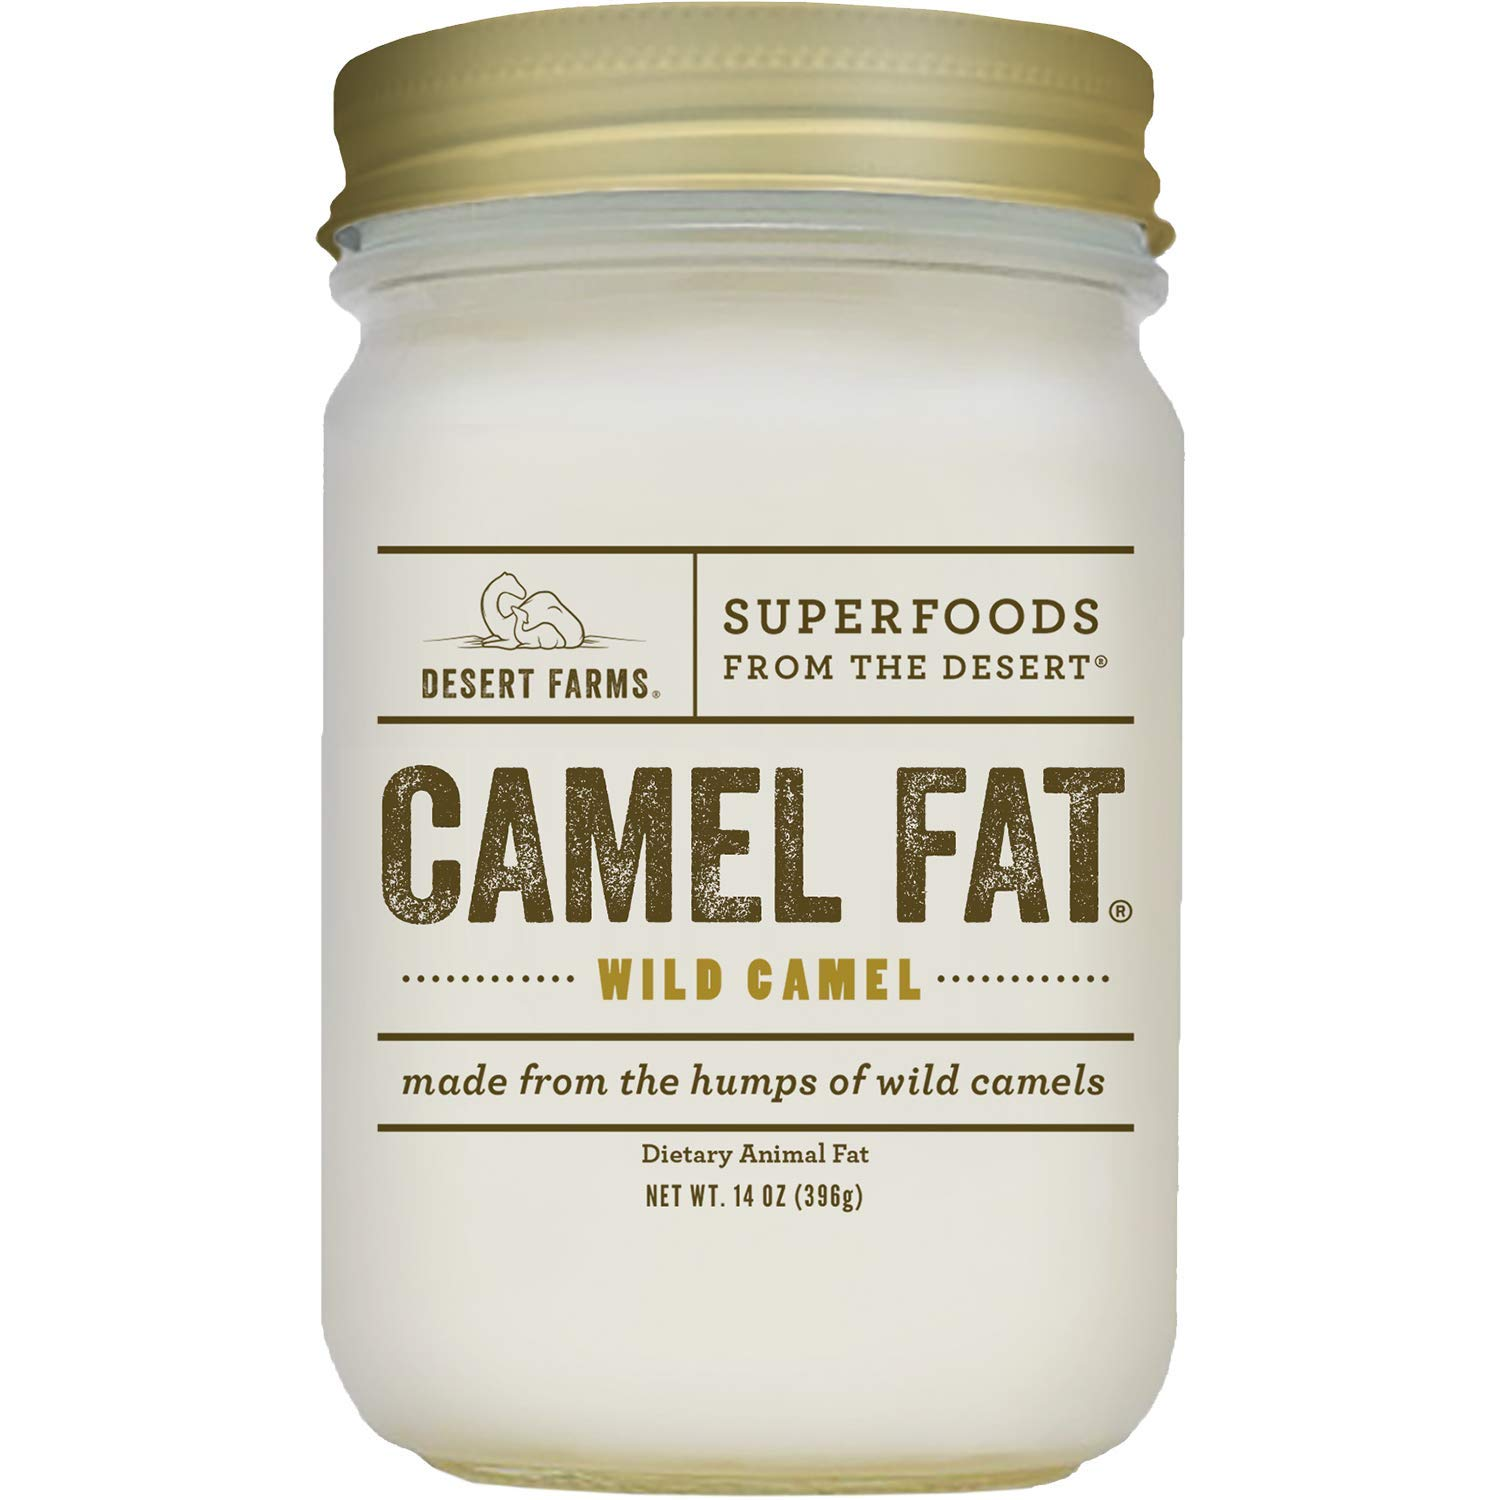 Desert Farms - Real Organic Cooking Camel Hump Fat - Paleo and Keto Certified - Quickly Melting Use For Fry [High Smoke Point] - 31 Fatty Acids & Gluten-Free - Made In The USA [14 oz]